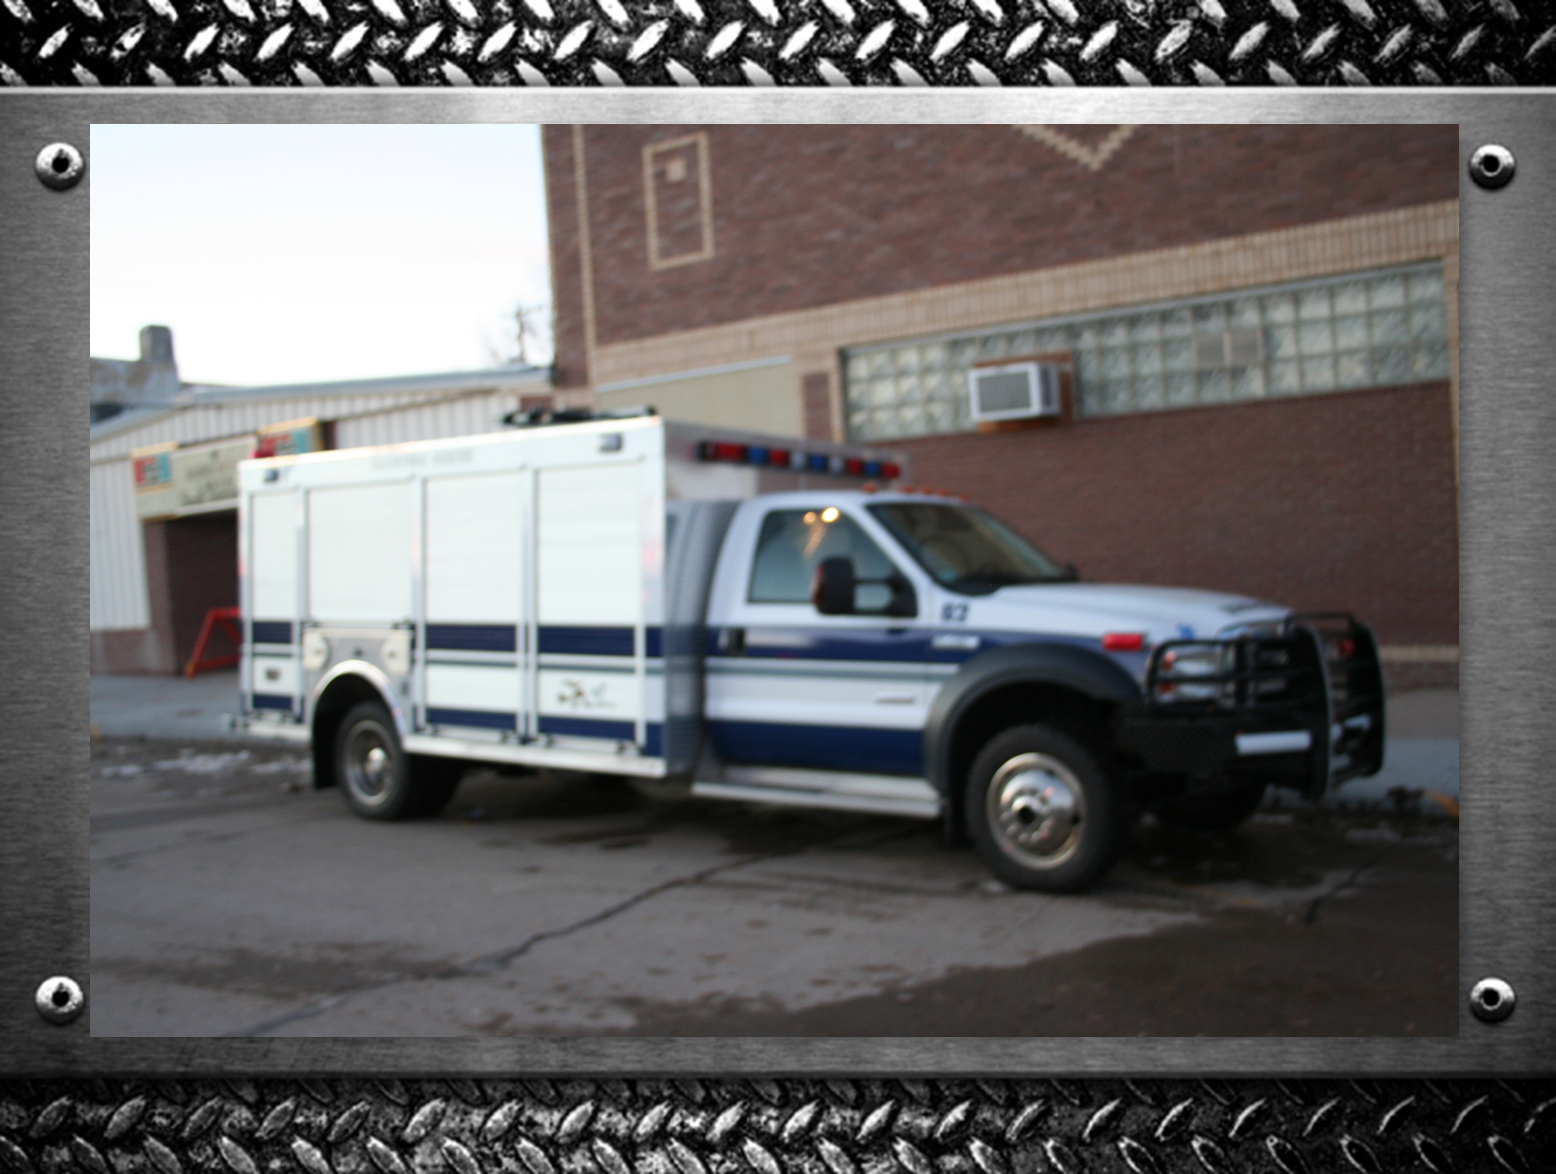 crawford-rescue-truck-main.png